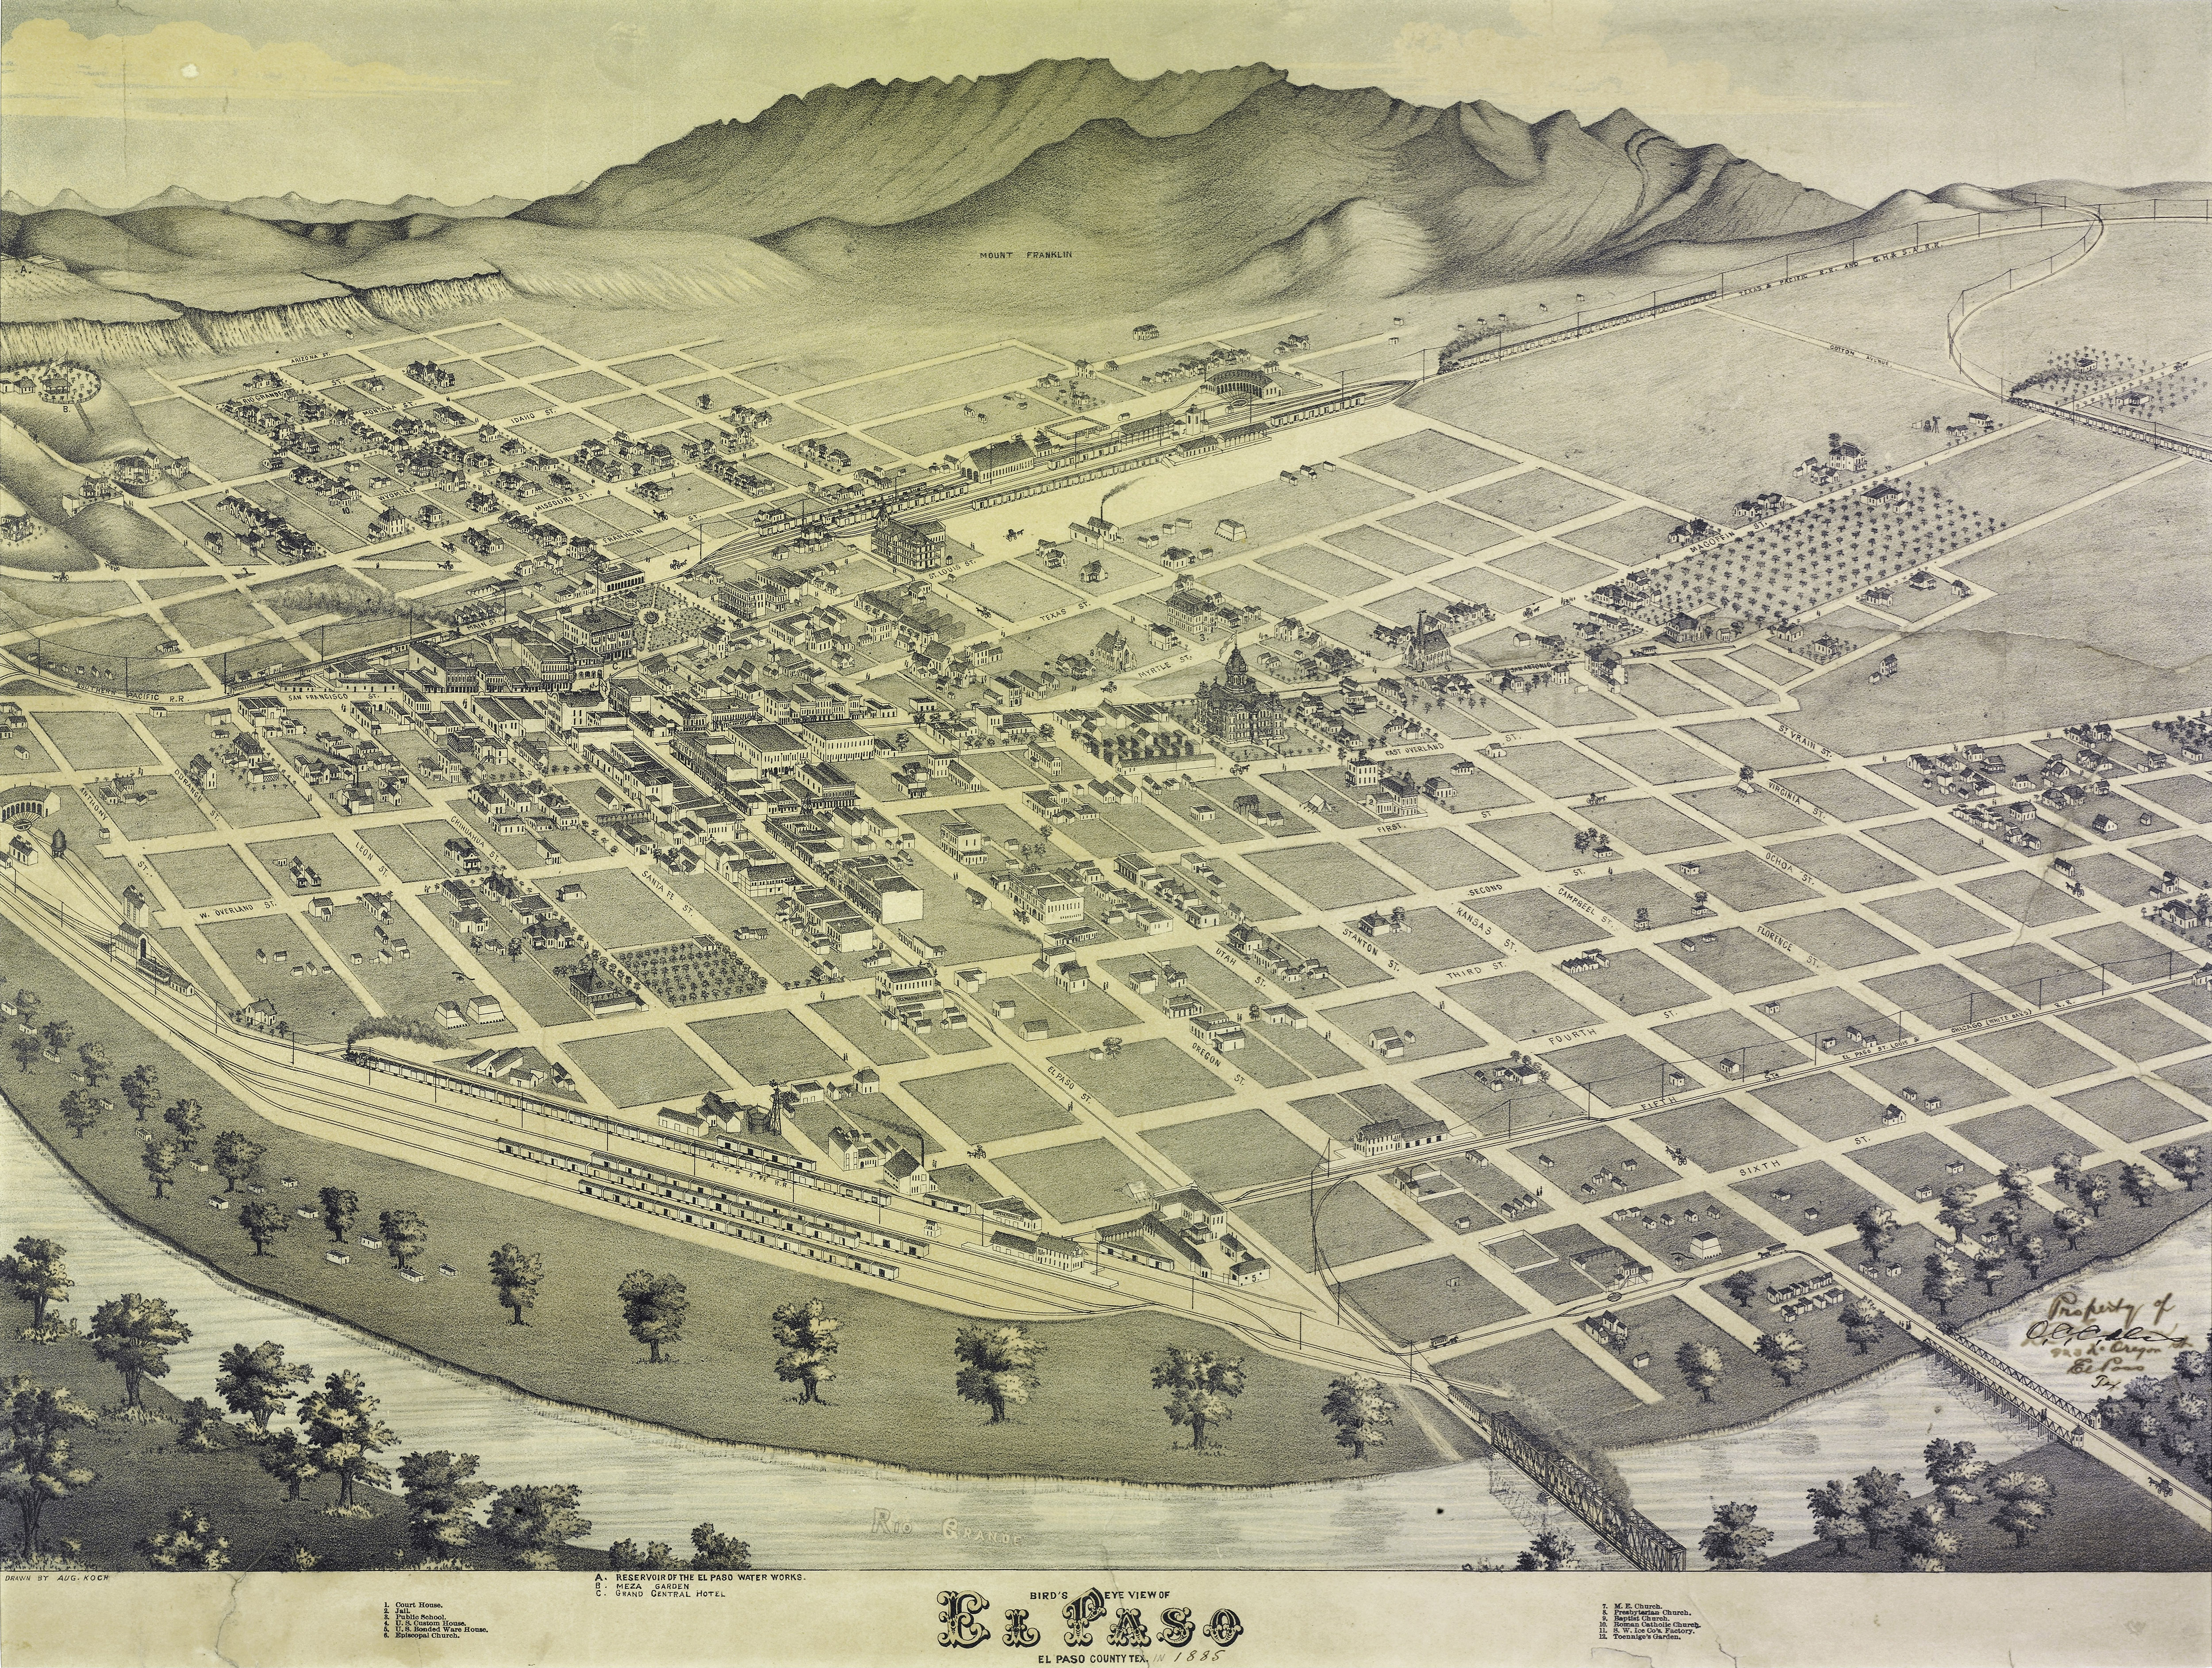 Map of El Paso in 1886 in Texas image - Free stock photo - Public ...